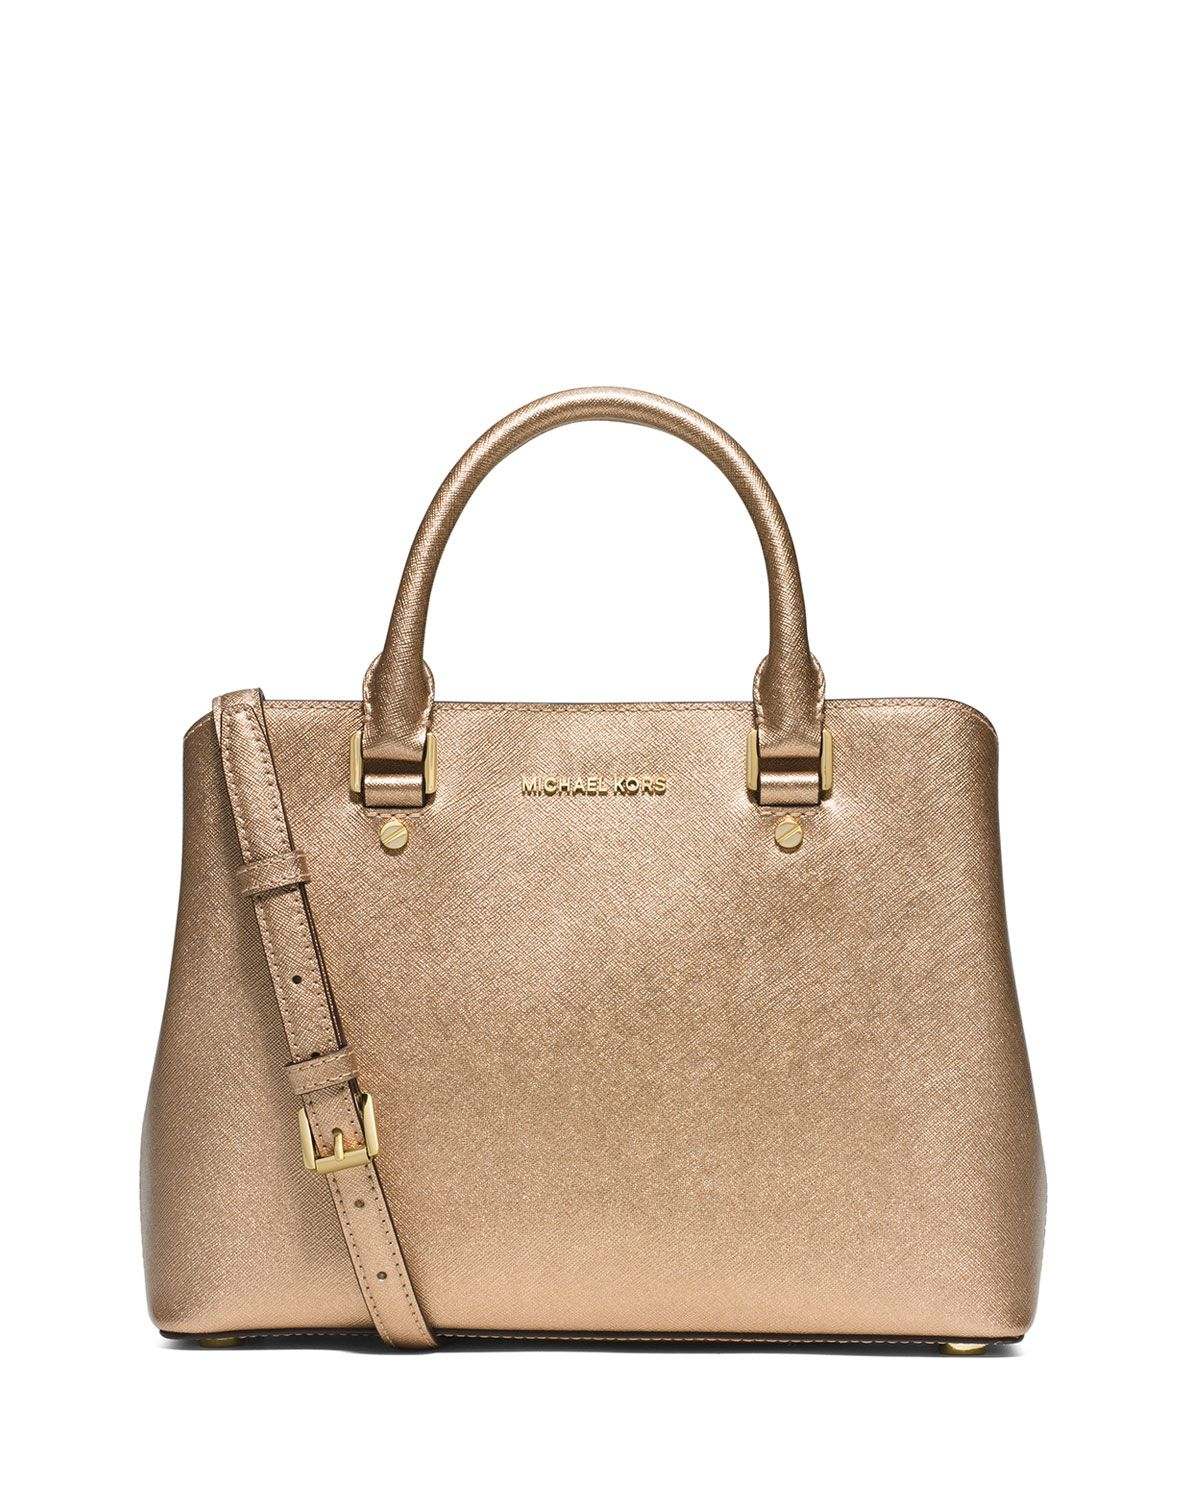 fdd9cfbd9680 MICHAEL Michael Kors Savannah Medium Satchel Bag